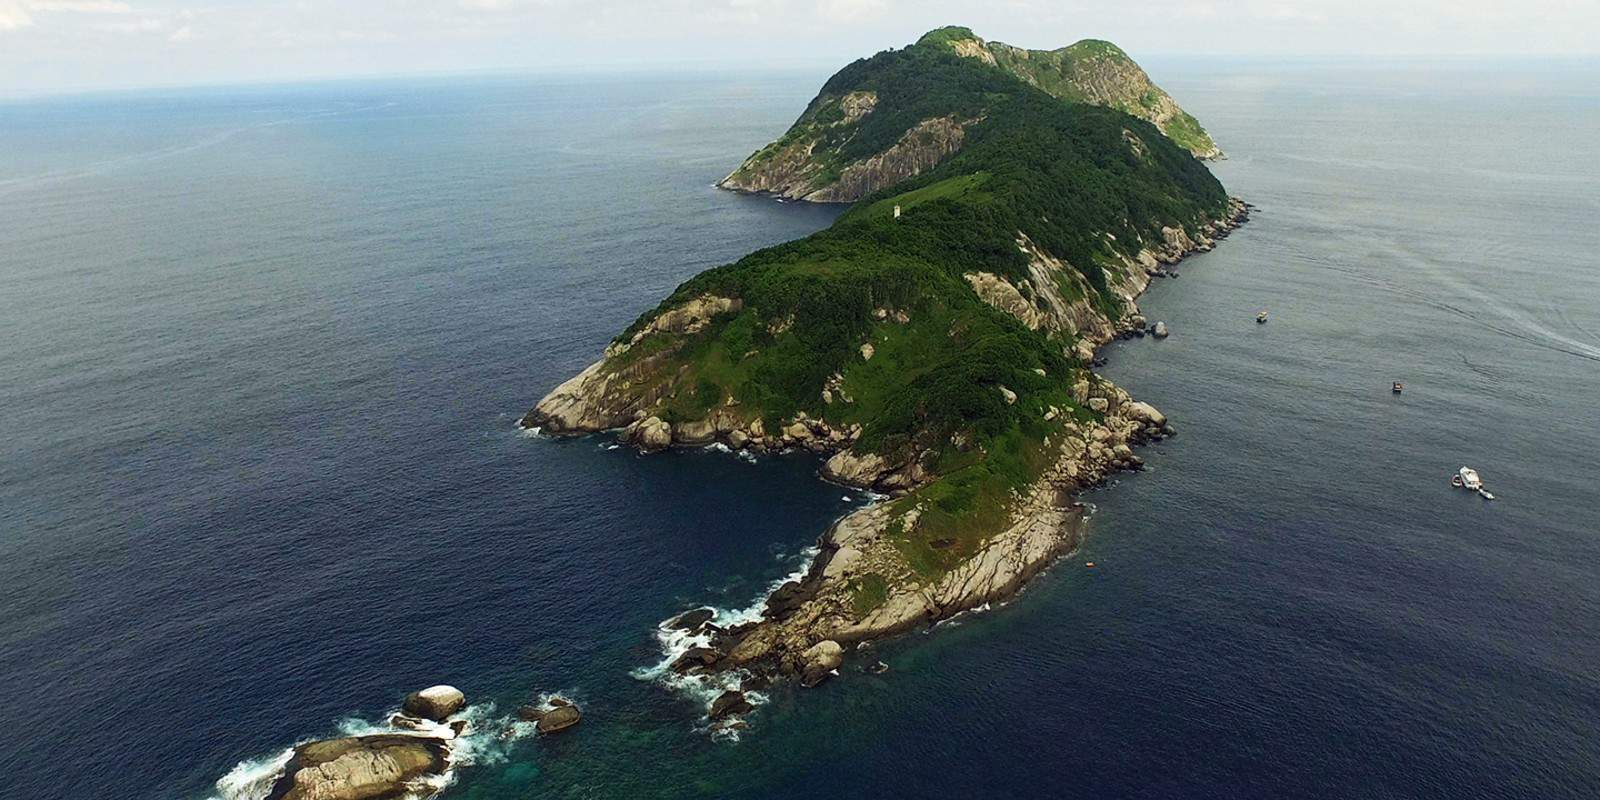 Snake Island-The World's Most Dangerous Island